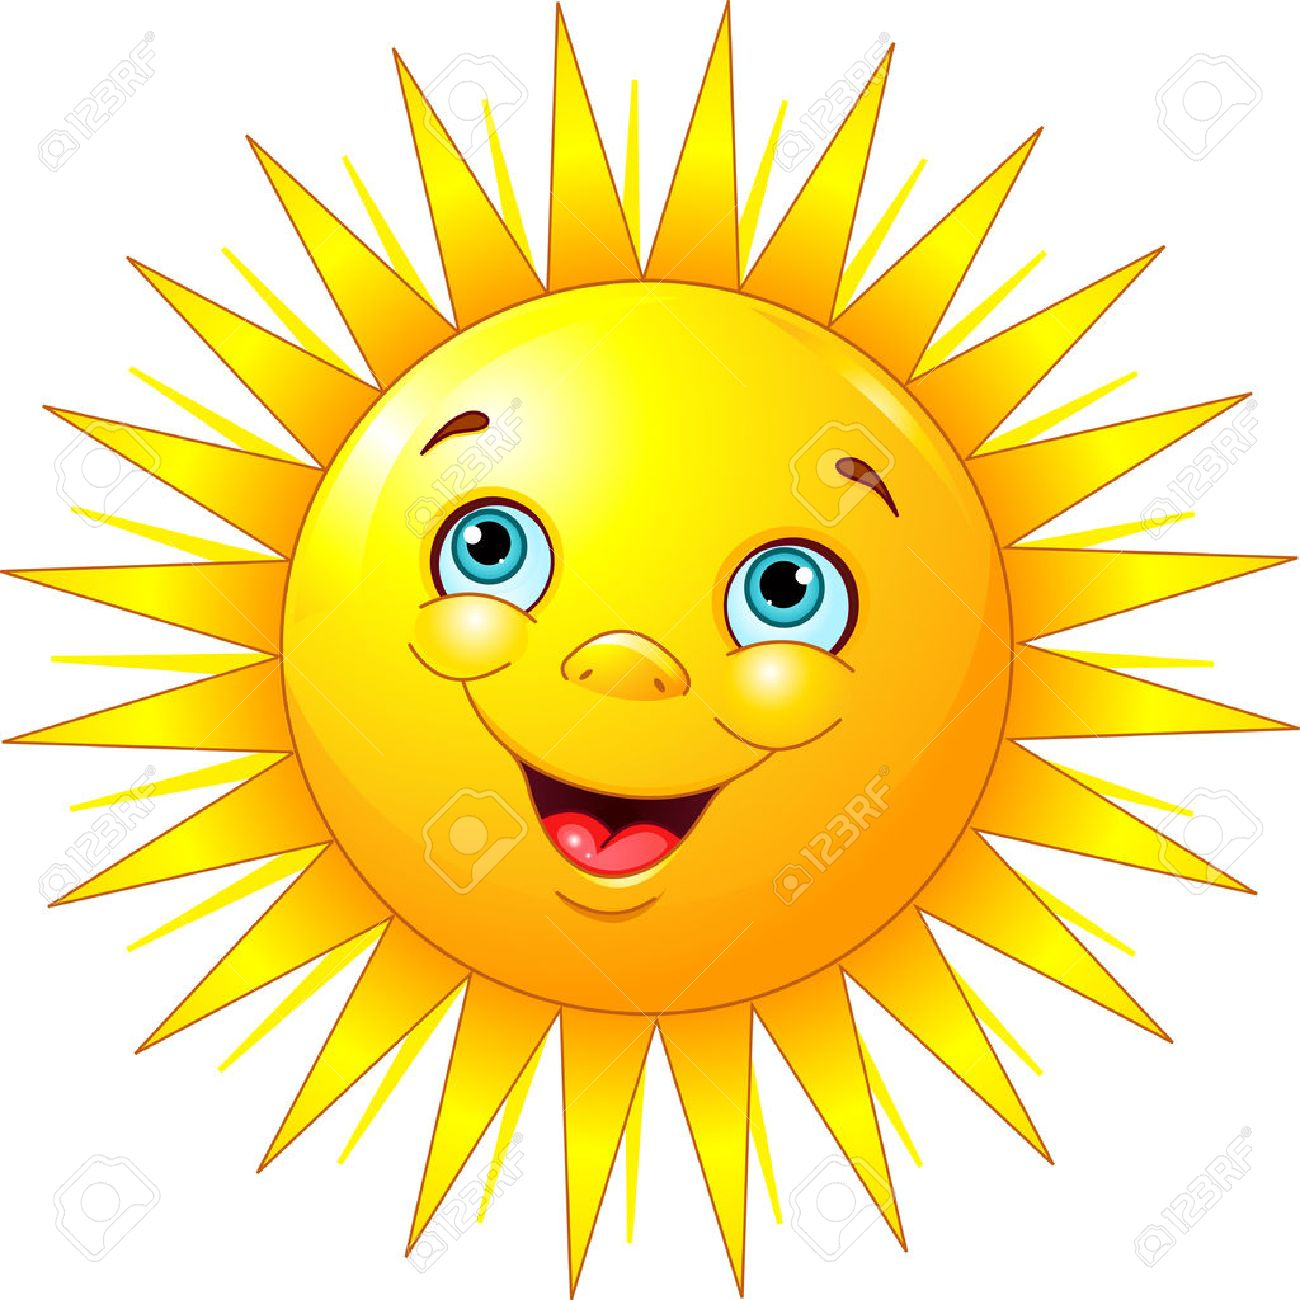 Illustration of smiling sun character.